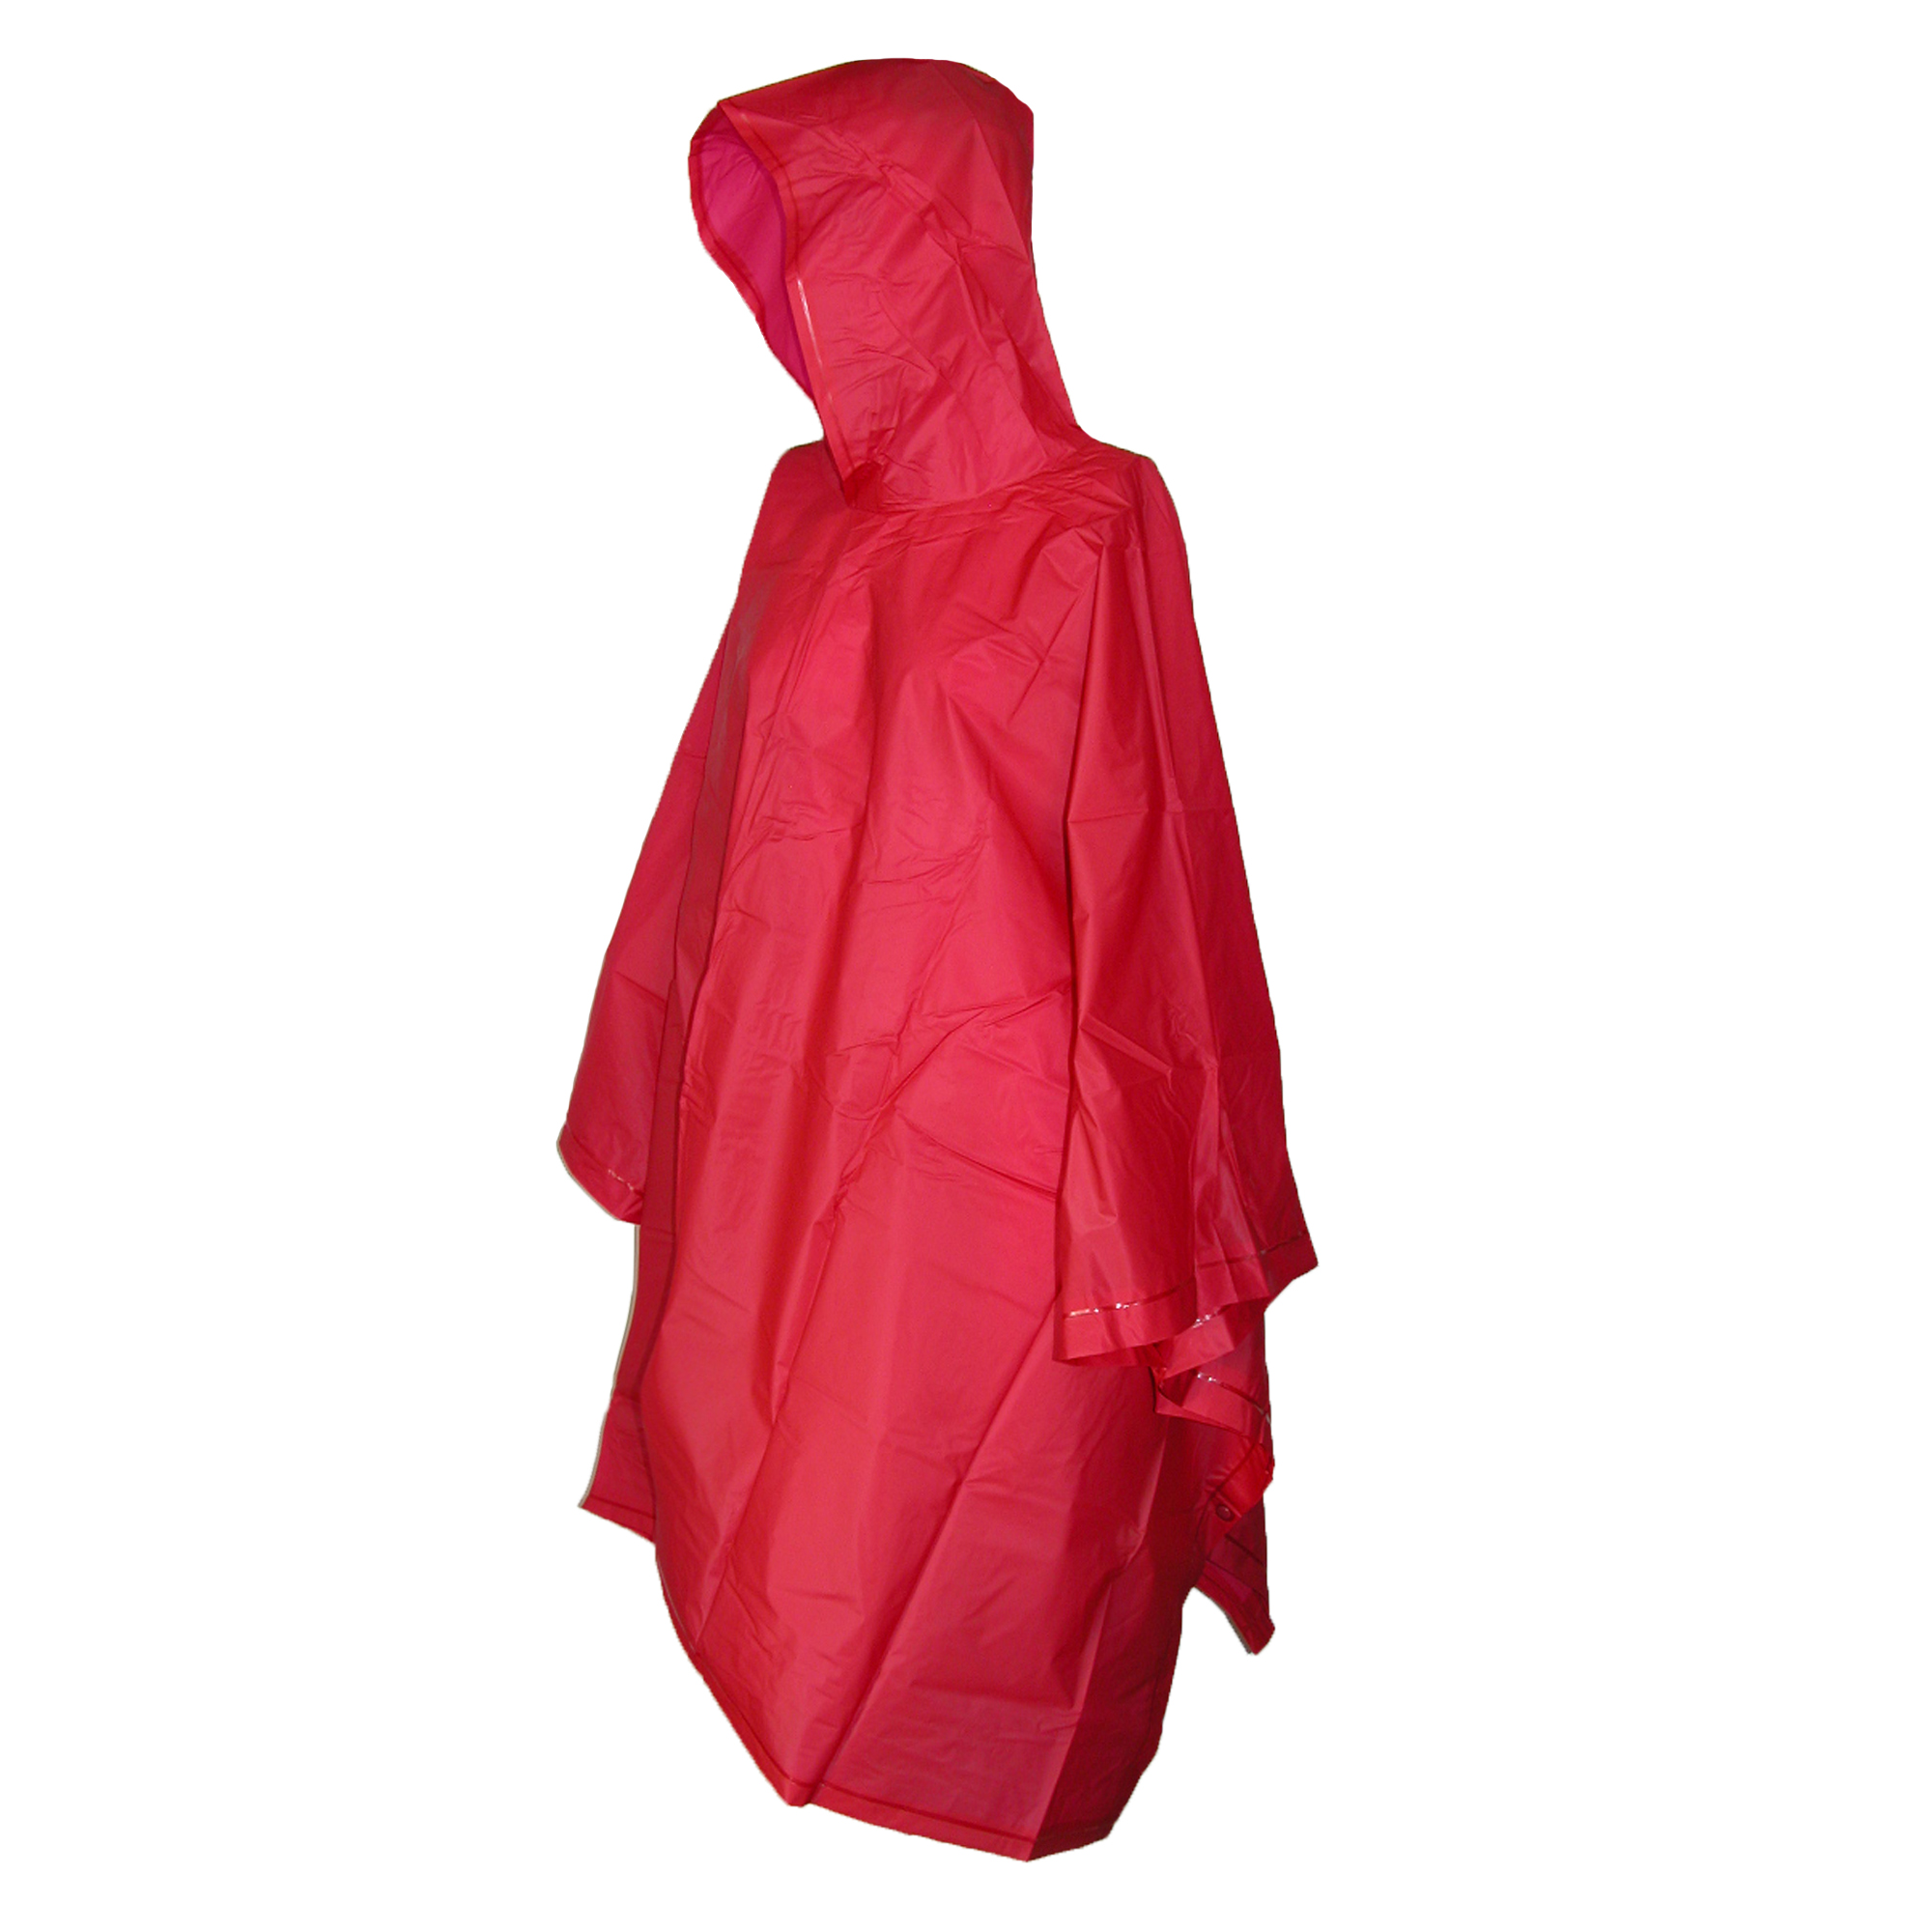 Totes Hooded Pullover Rain Poncho with Side Snaps by Totes